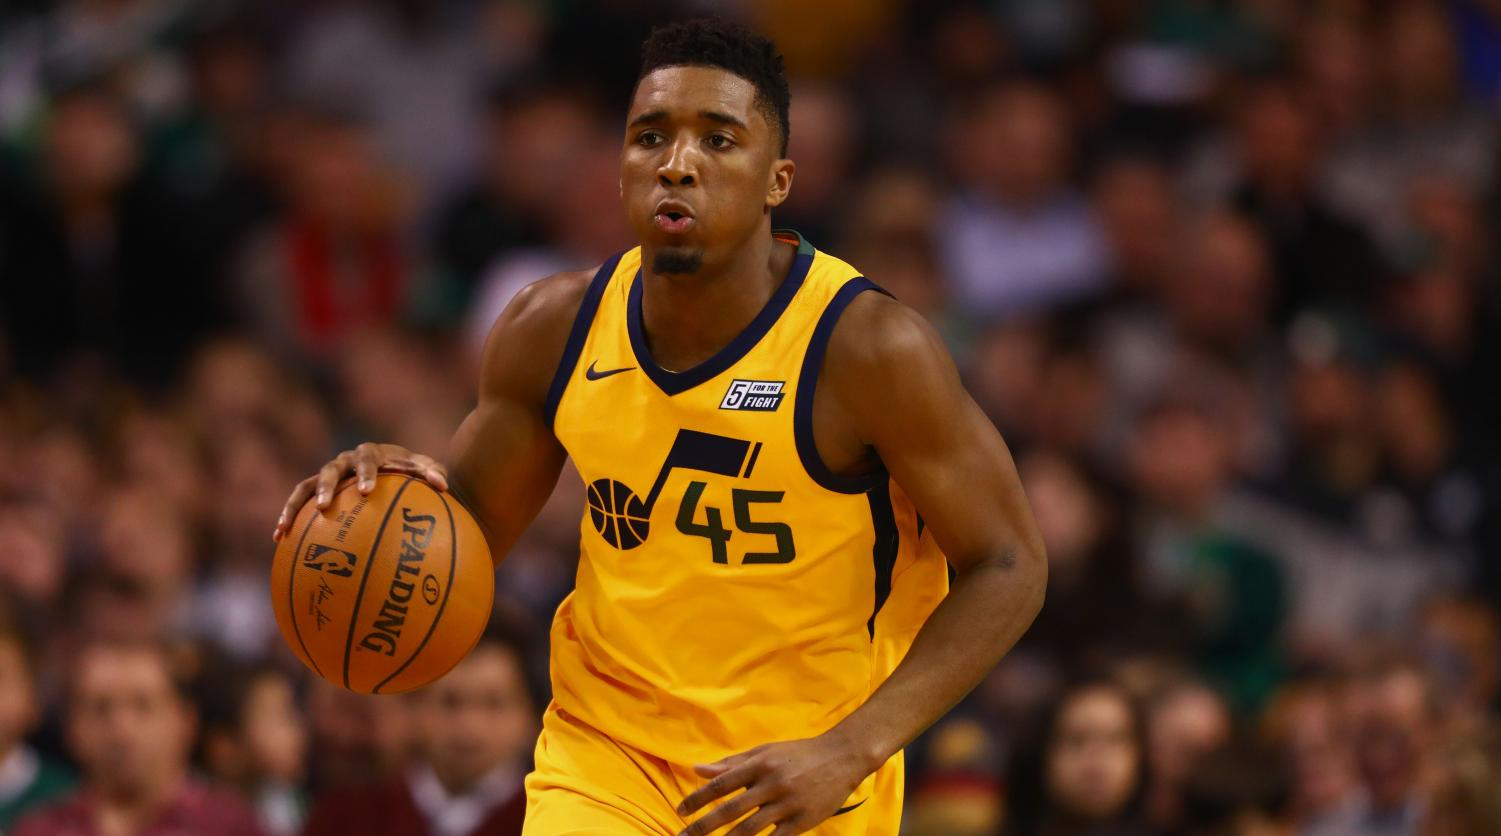 Utah Jazz Player, Donovan Mitchell, had a great season.